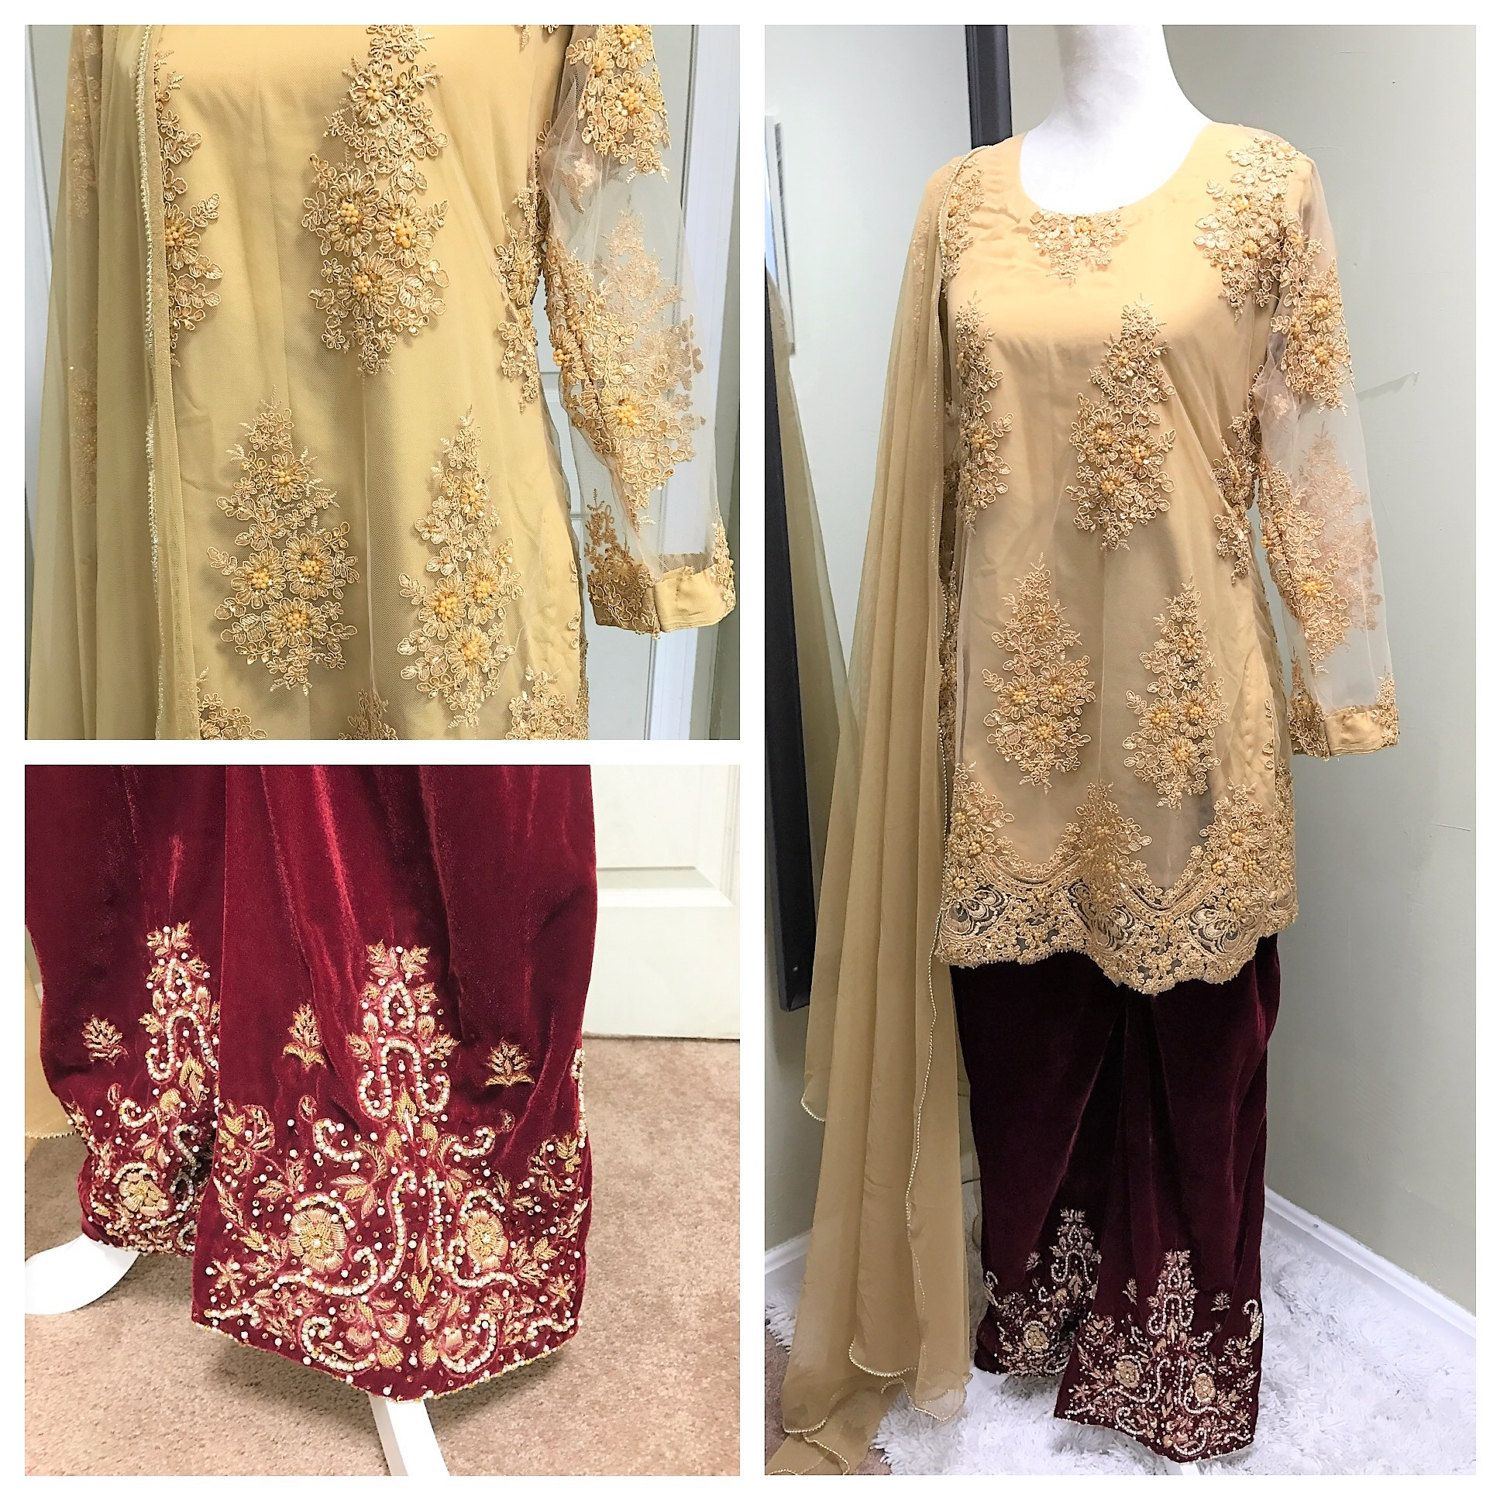 Pakistani Clothes Gold Embellished Lace Shirt With Velvet Embroideried Bellbottom Size M Indian Pak Pakistani Outfits Velvet Bell Bottoms Beautiful Outfits